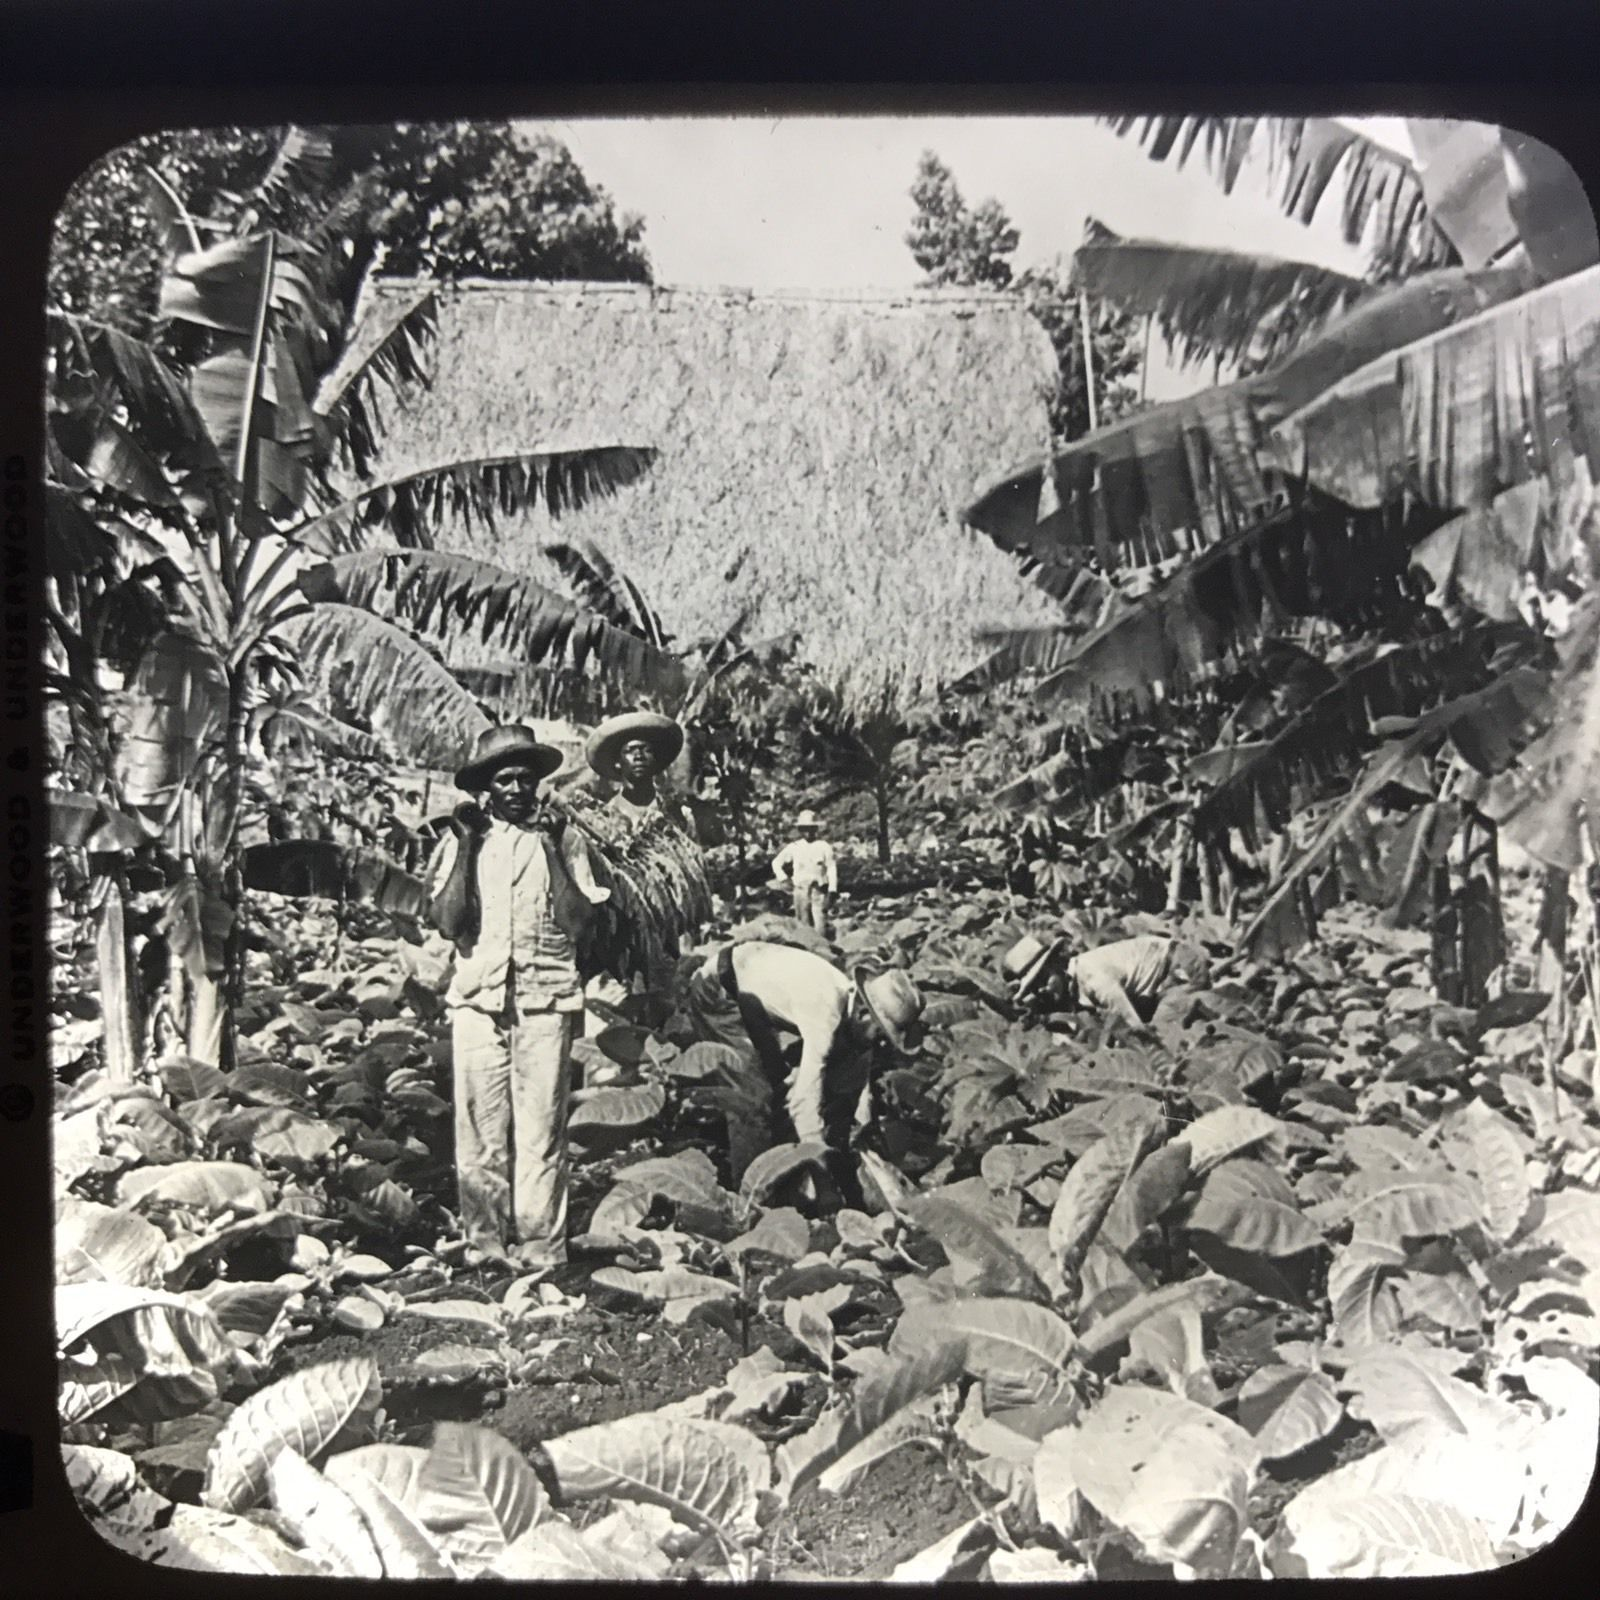 Vtg Keystone Magic Lantern Glass Slide Photo Workers In Tobacco Field Cuba